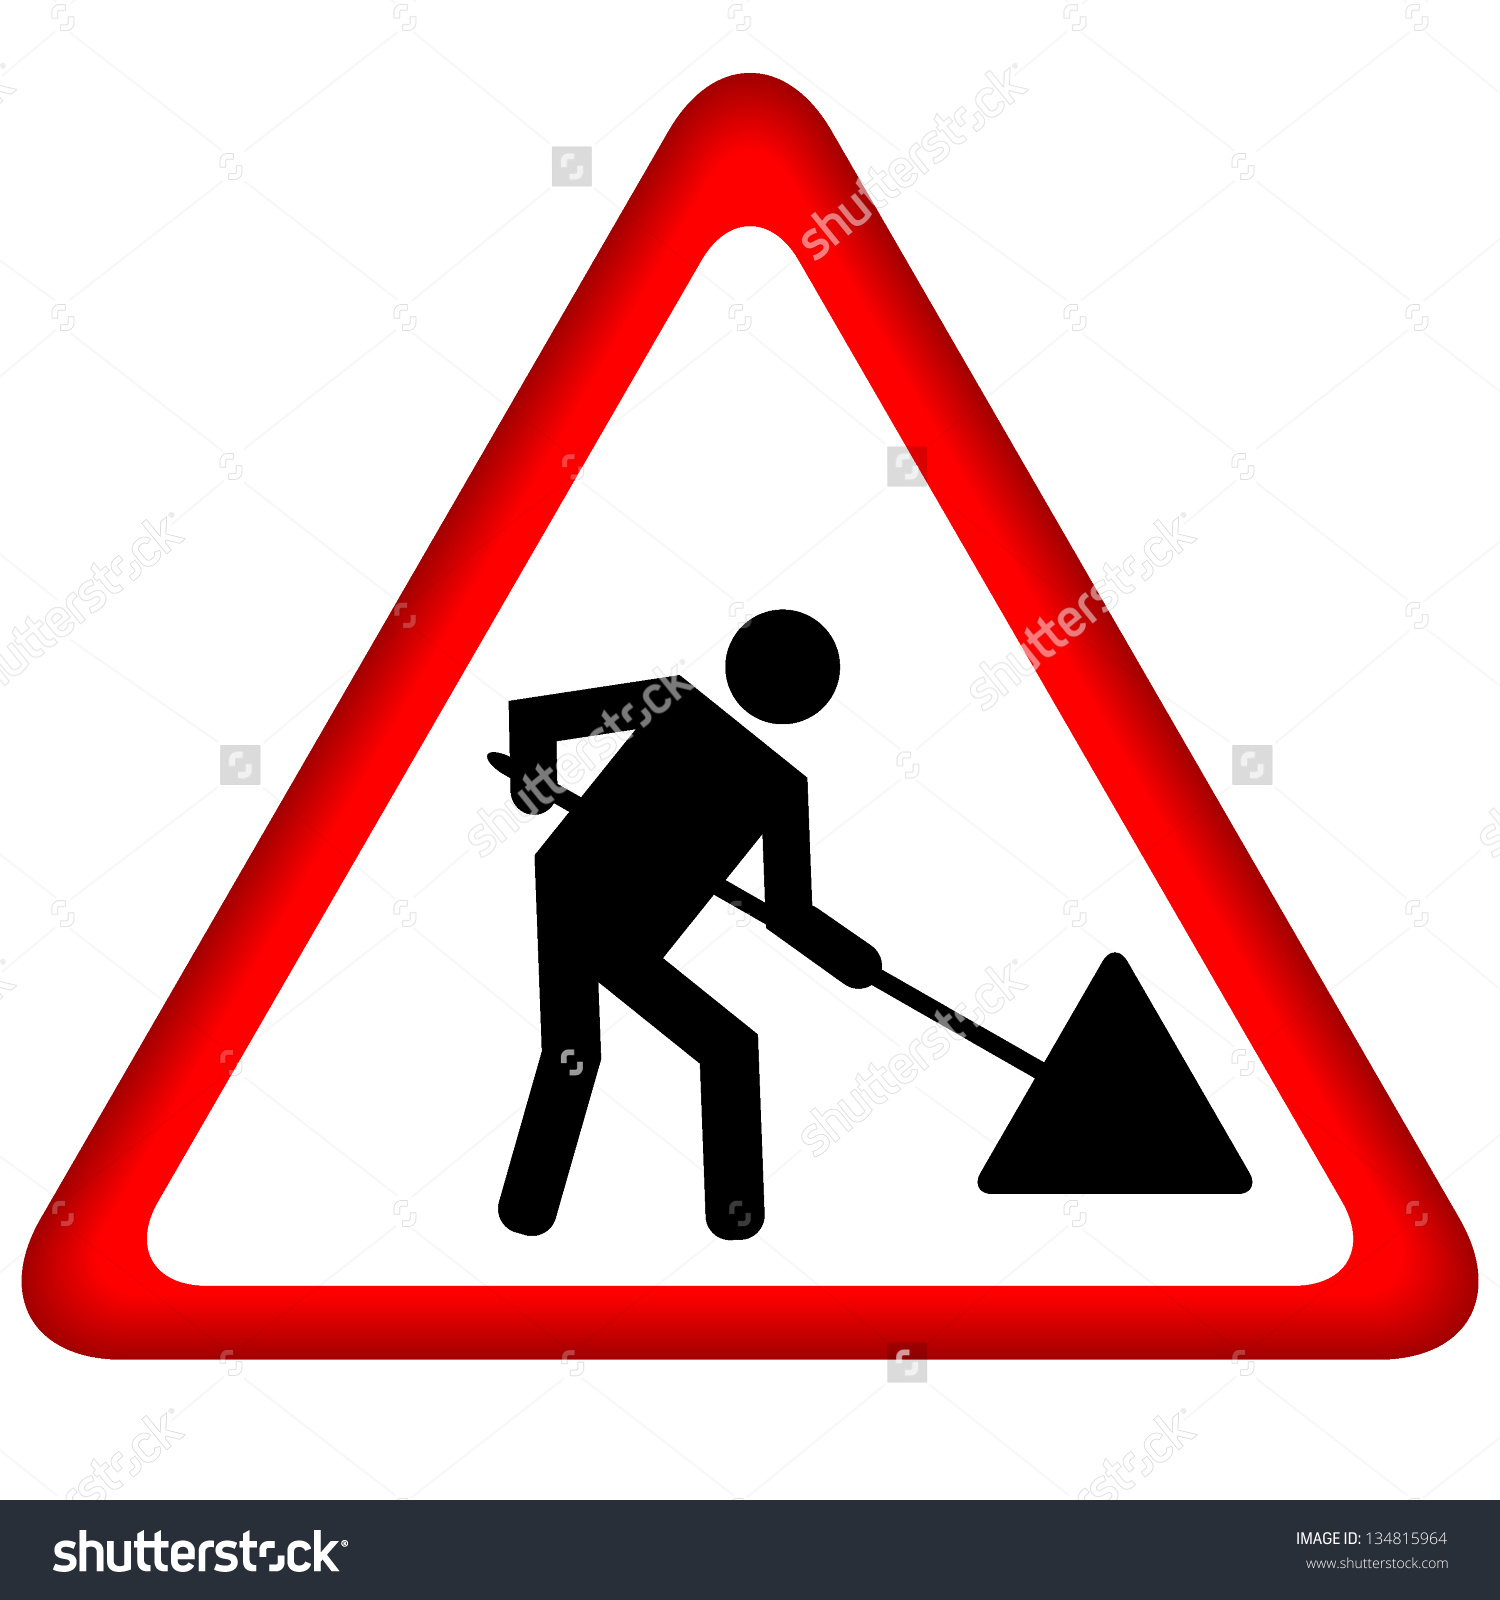 Road Works Sign Under Construction Stock Vector 134815964.